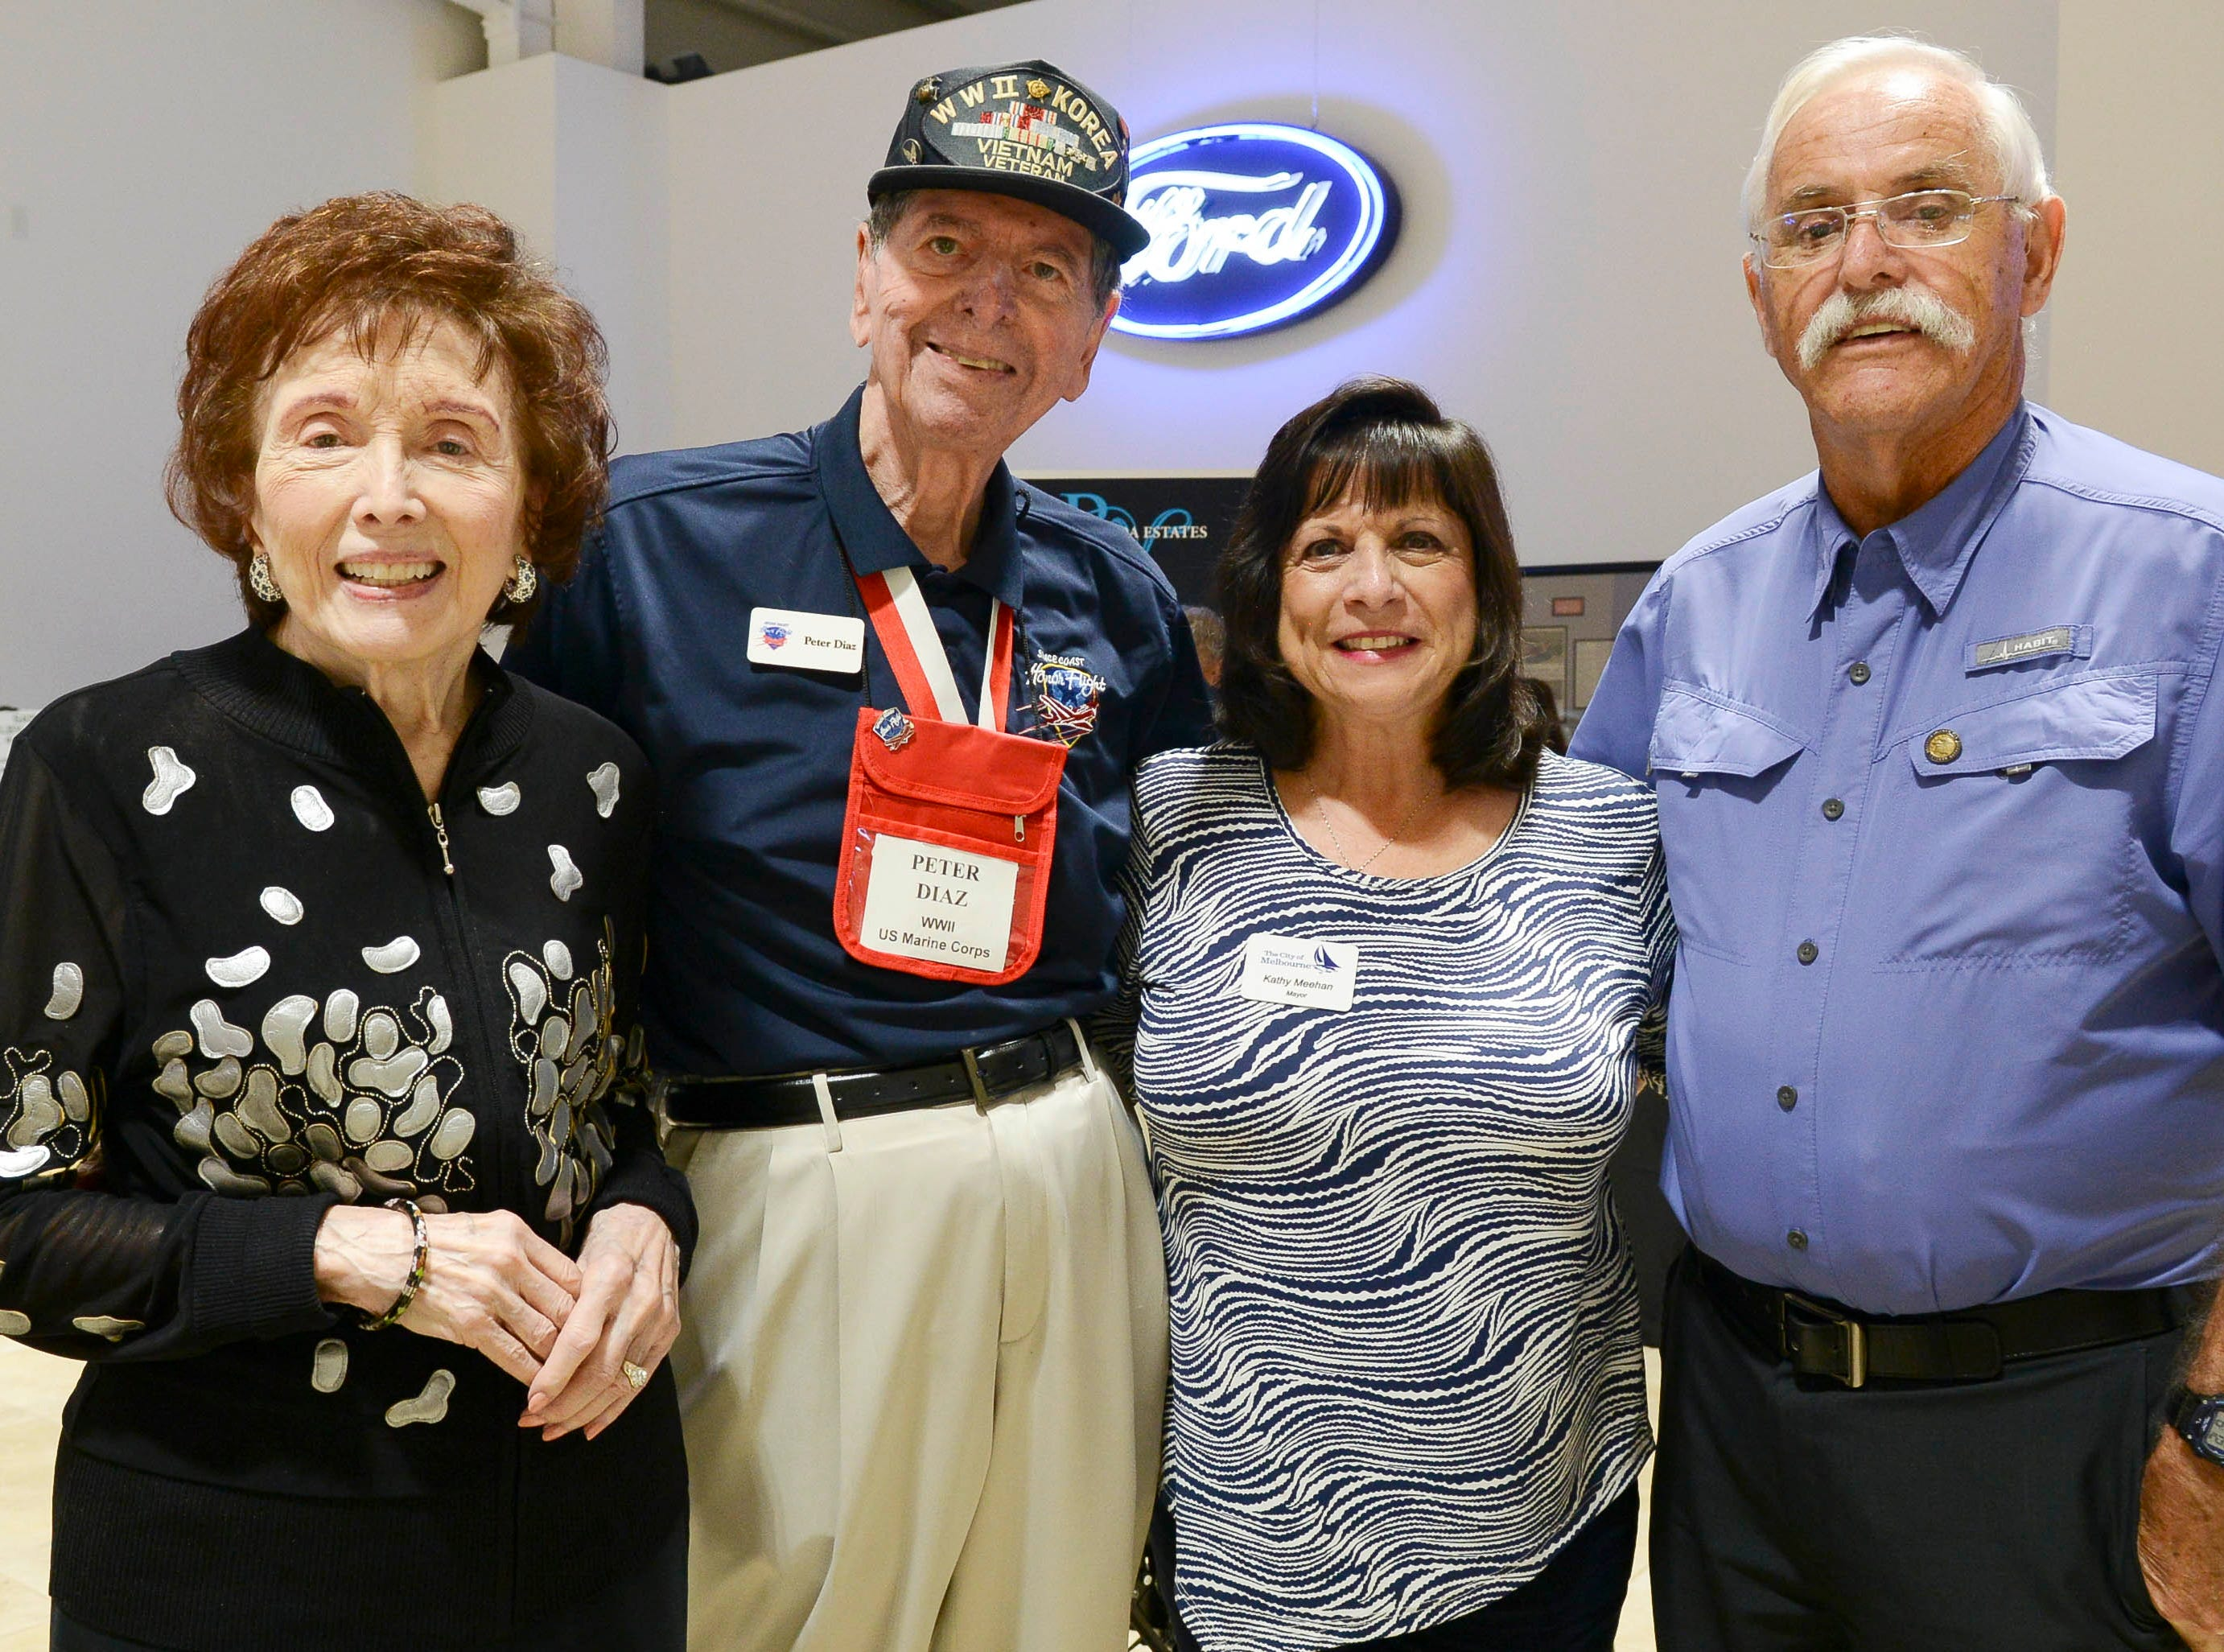 Georgette and Peter Diaz and Kathy and George Meehan get their picture taken during the Stars and Stripes fundraiser at American Muscle Car Museum. The event was a fundraiser for Space Coast Honor Flight.